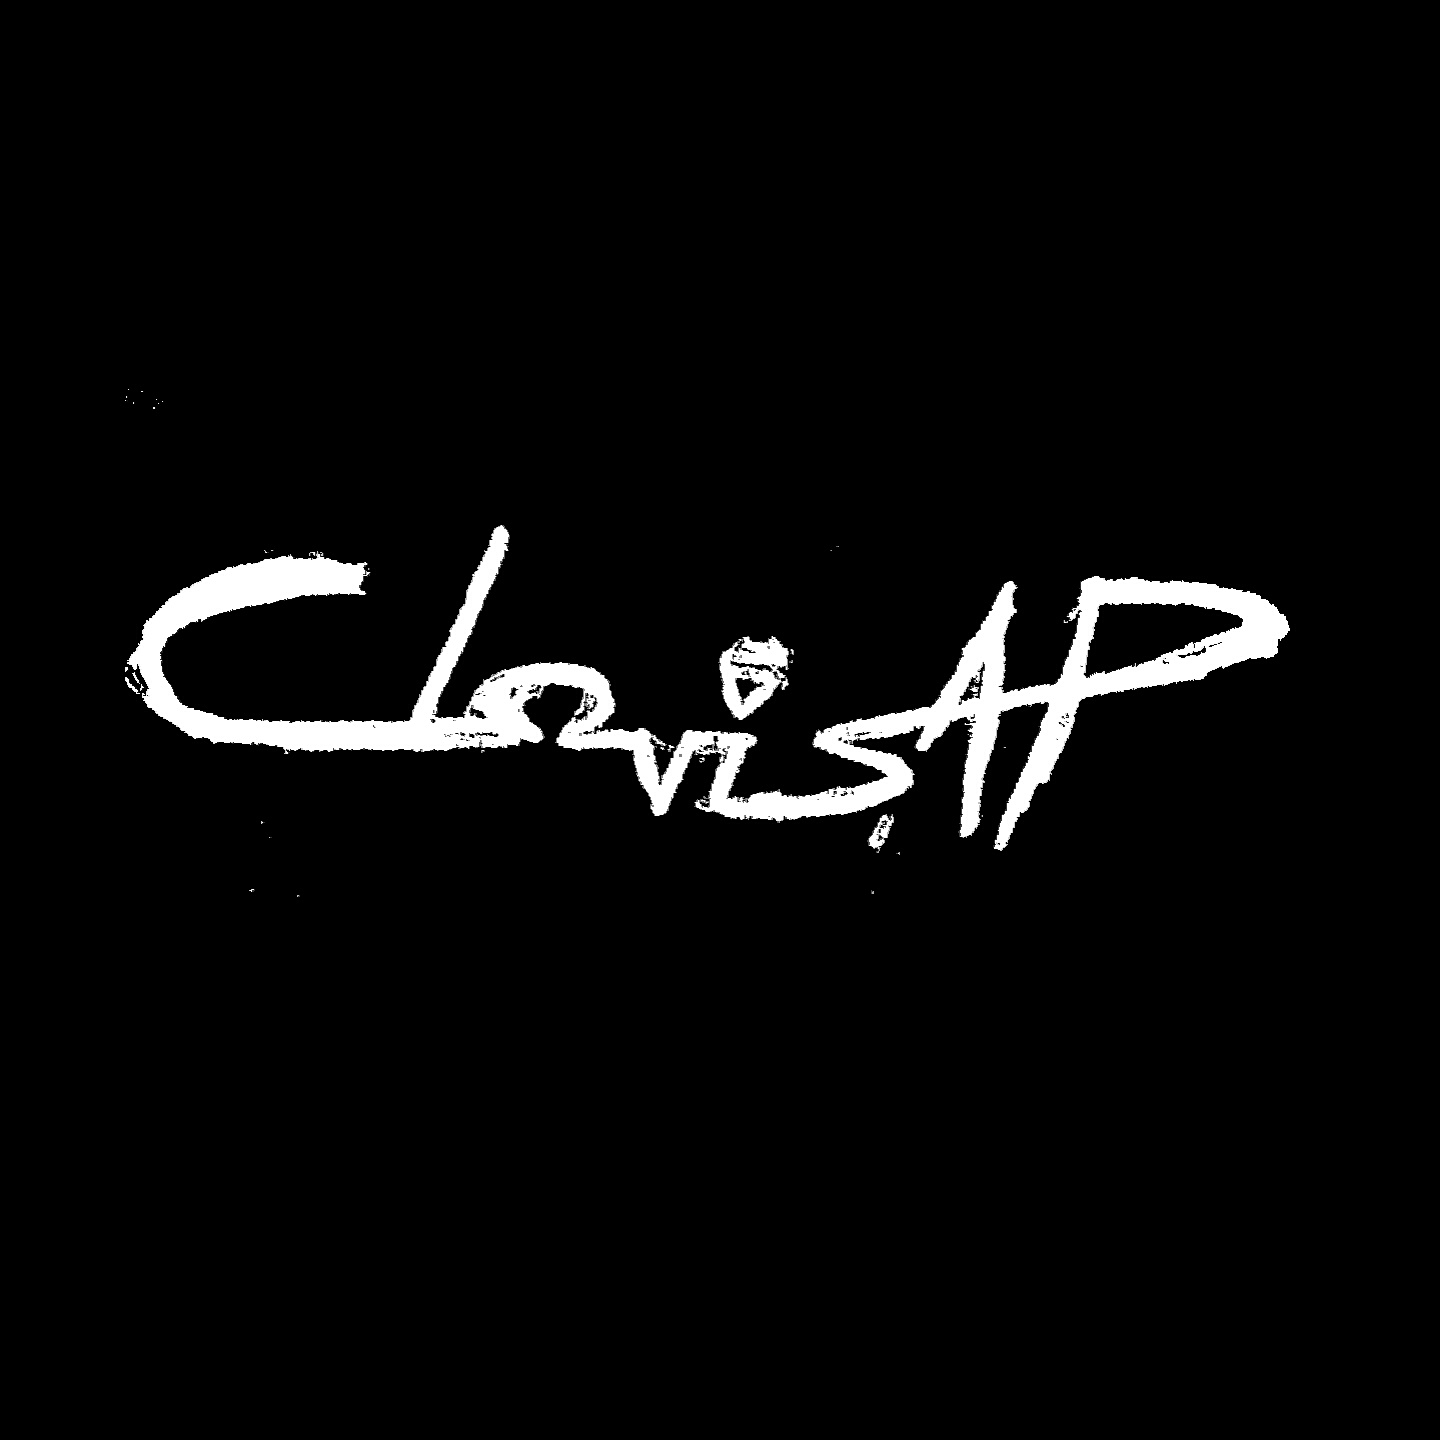 Clovis AP - #1 Top Artist And Entrepreneur Worldwide - Helping Businesses And Brands Scale Online